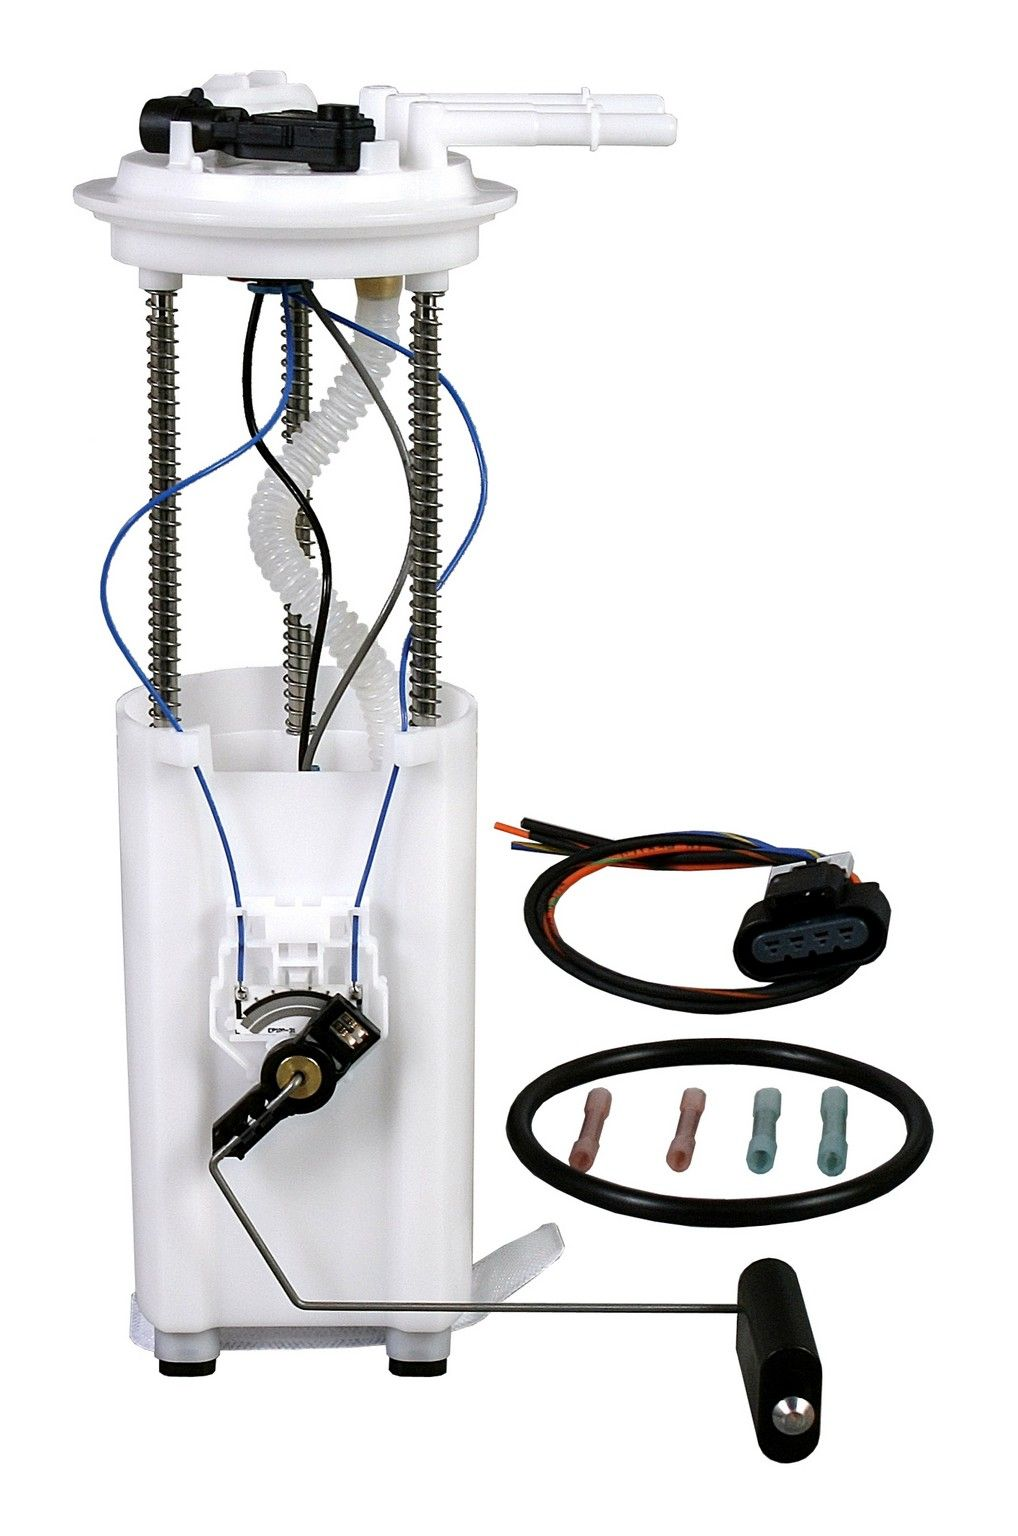 3065F8F isuzu rodeo fuel pump module assembly replacement (airtex 1999 Isuzu Trooper Roof Rack at reclaimingppi.co